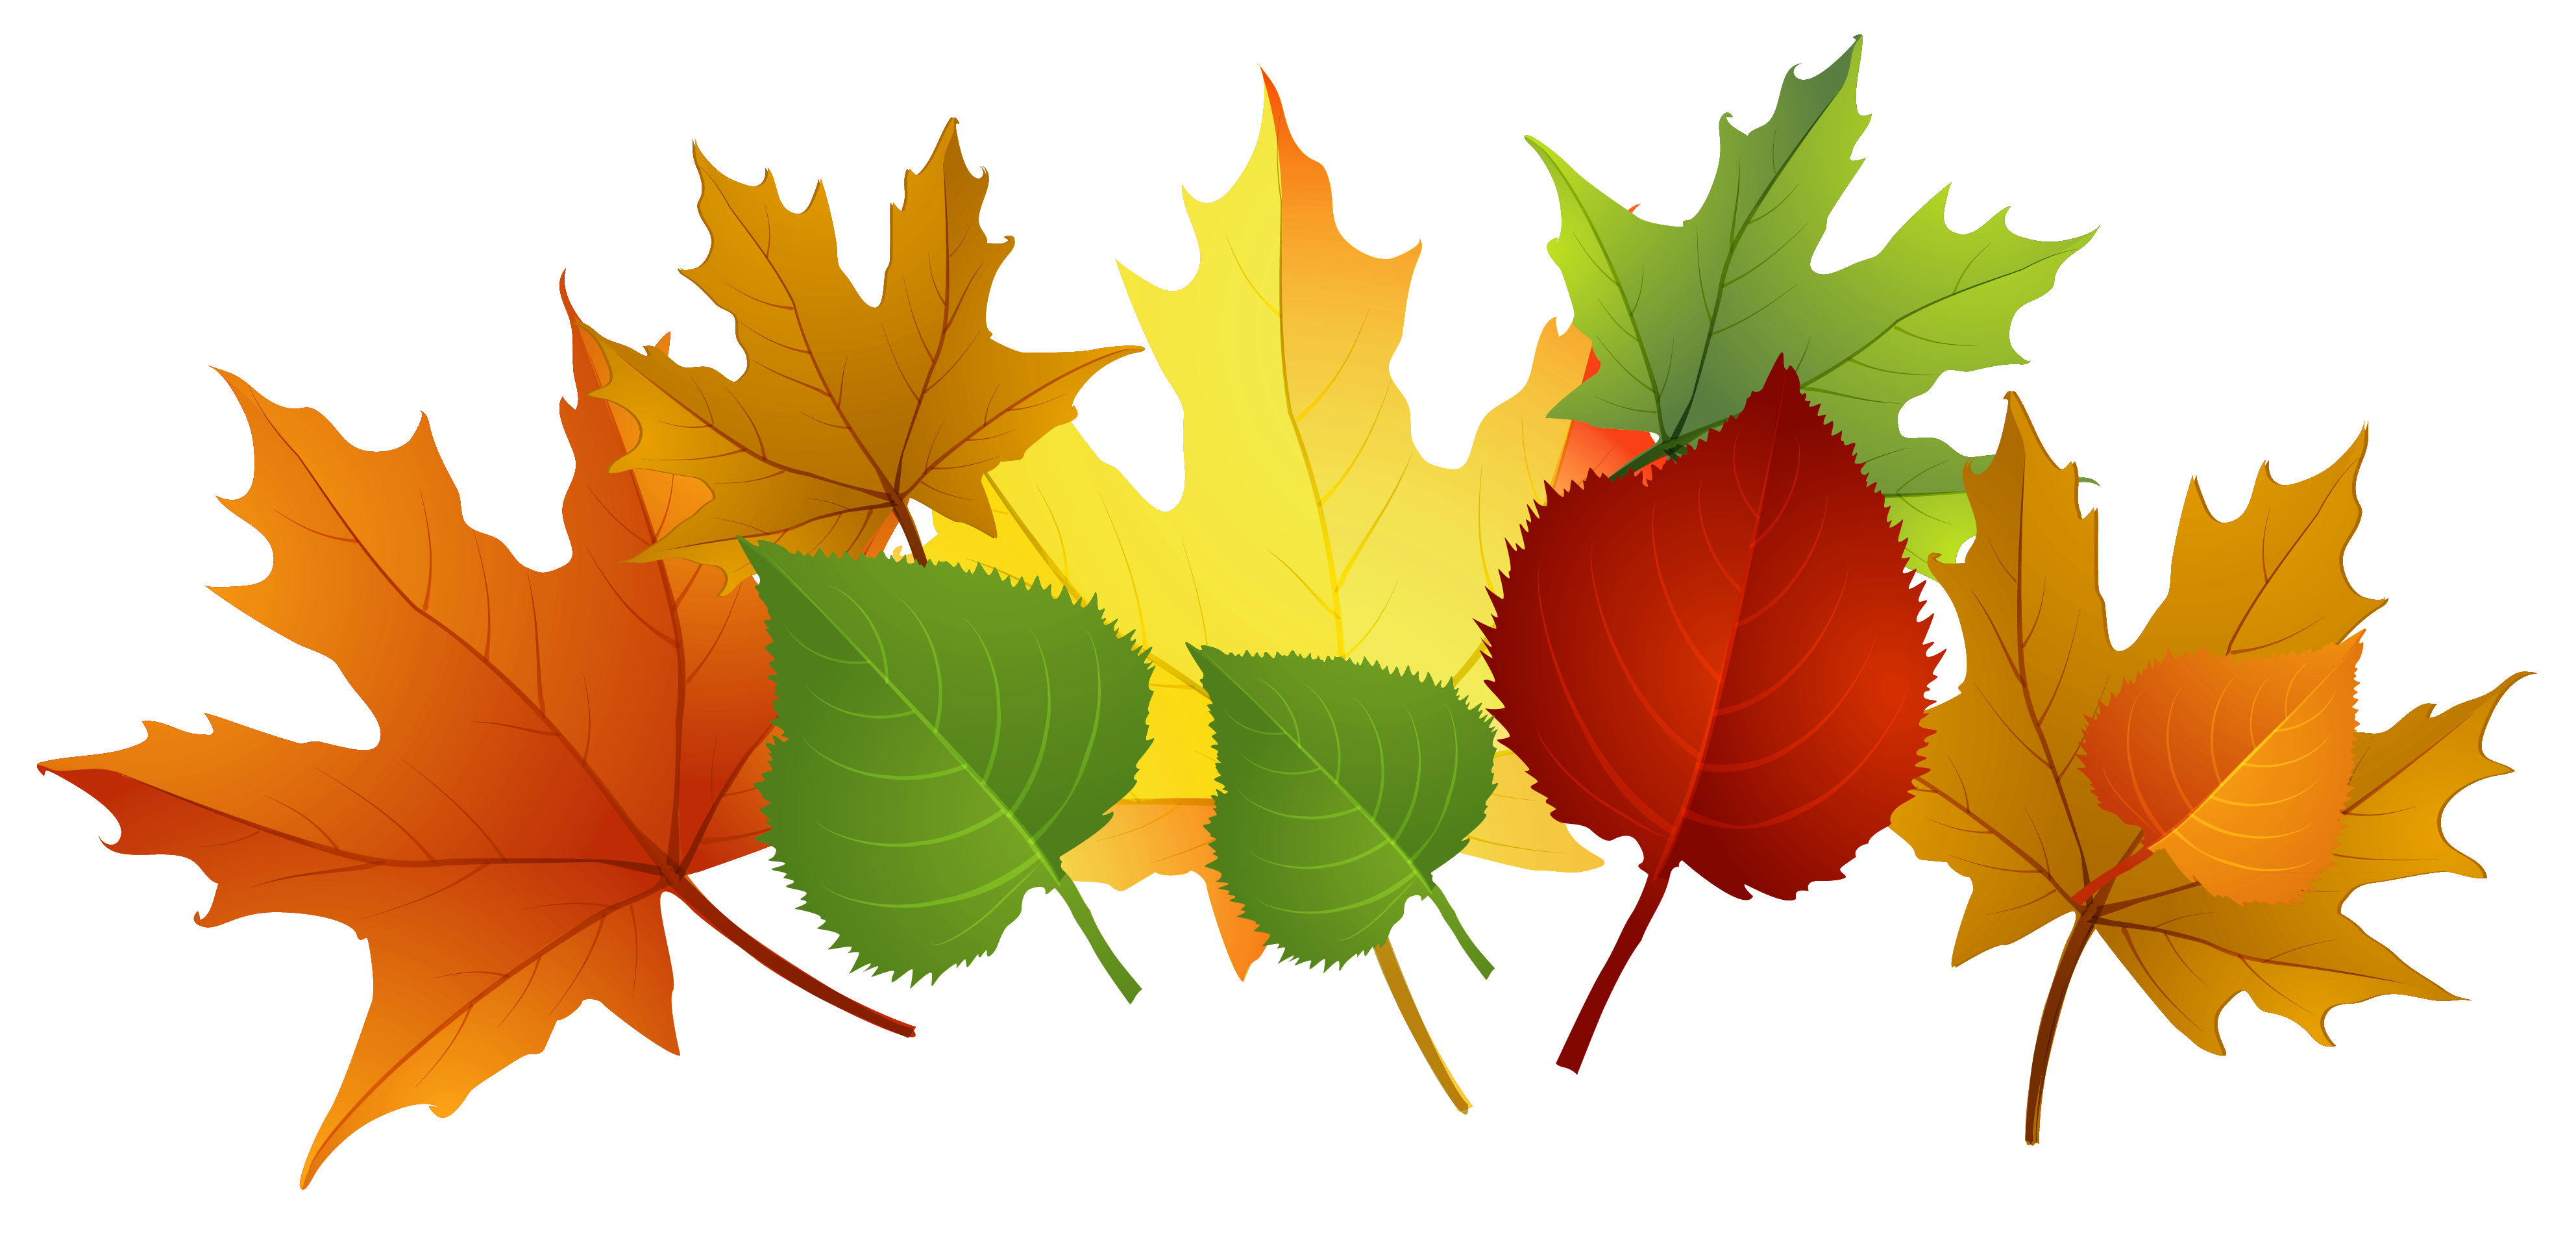 Fall Clip Art Images Free Cliparts Co-Fall Clip Art Images Free Cliparts Co-10